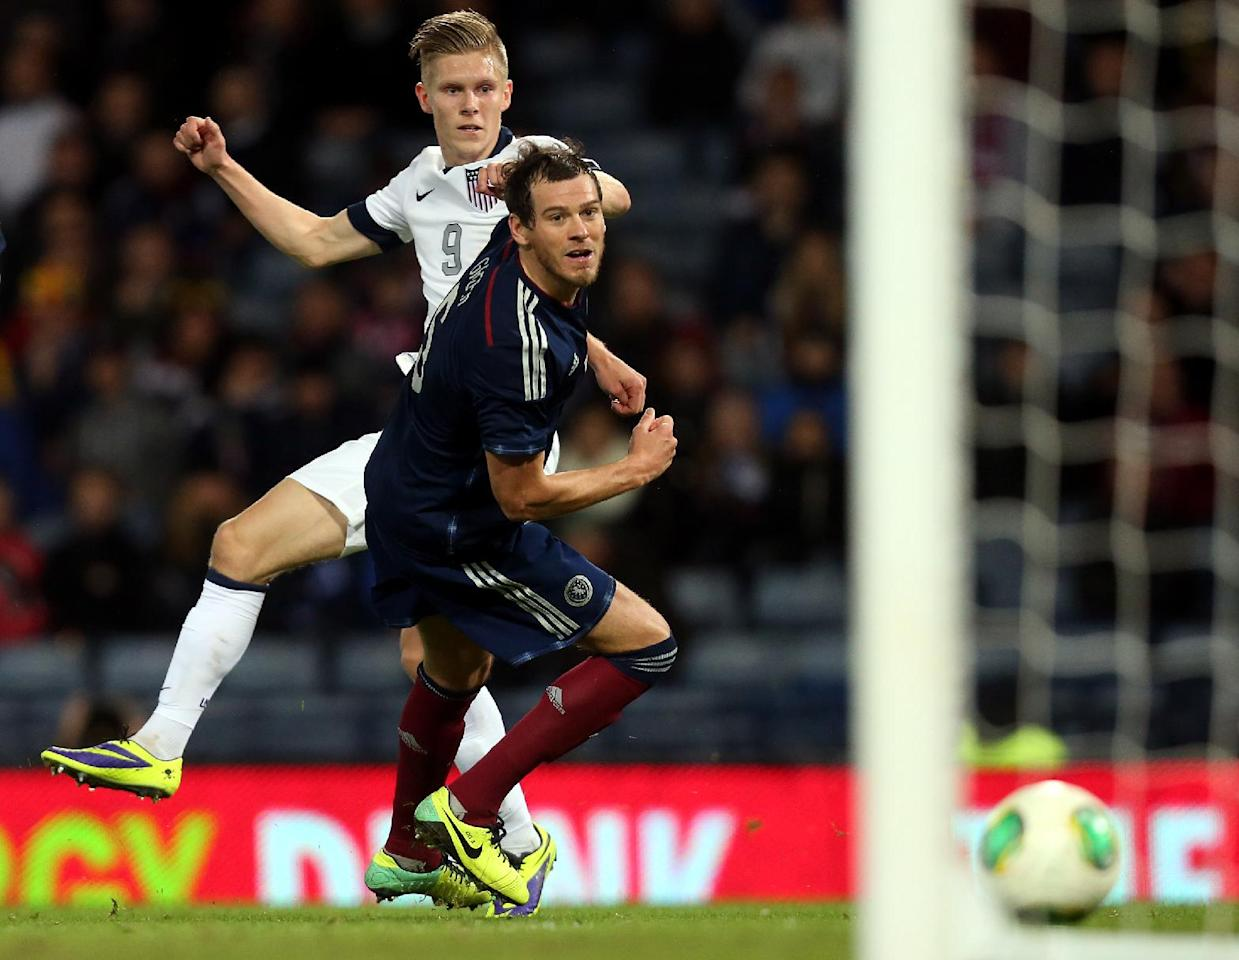 United States' Aron Johannsson, left, has a shot towards goal, unsuccessfully past Scotland's Gordon Greer, right, during their international soccer match at Hampden Park, Glasgow, Scotland, Friday Nov. 15, 2013. (AP Photo/Scott Heppell)